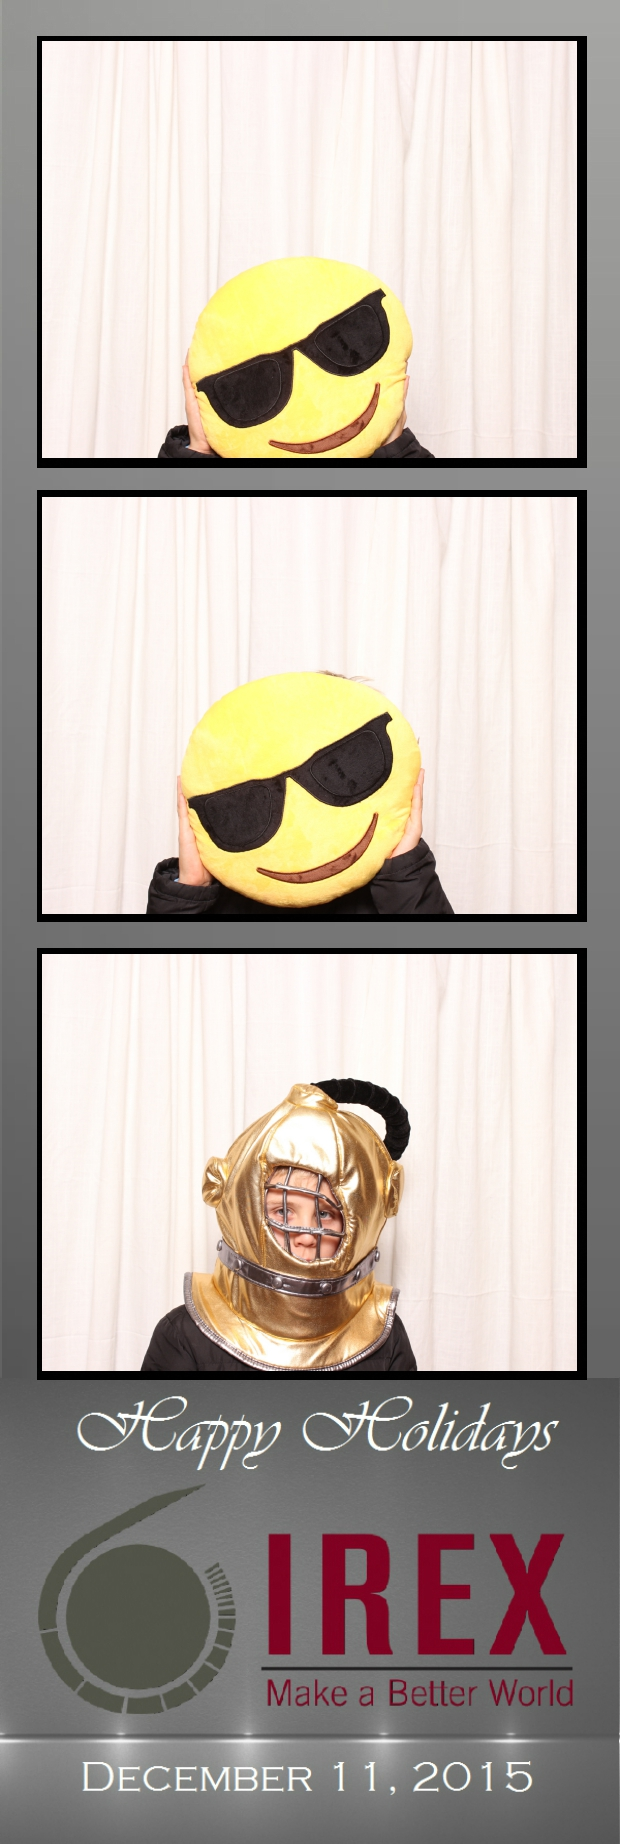 Guest House Events Photo Booth Strips IREX (14).jpg